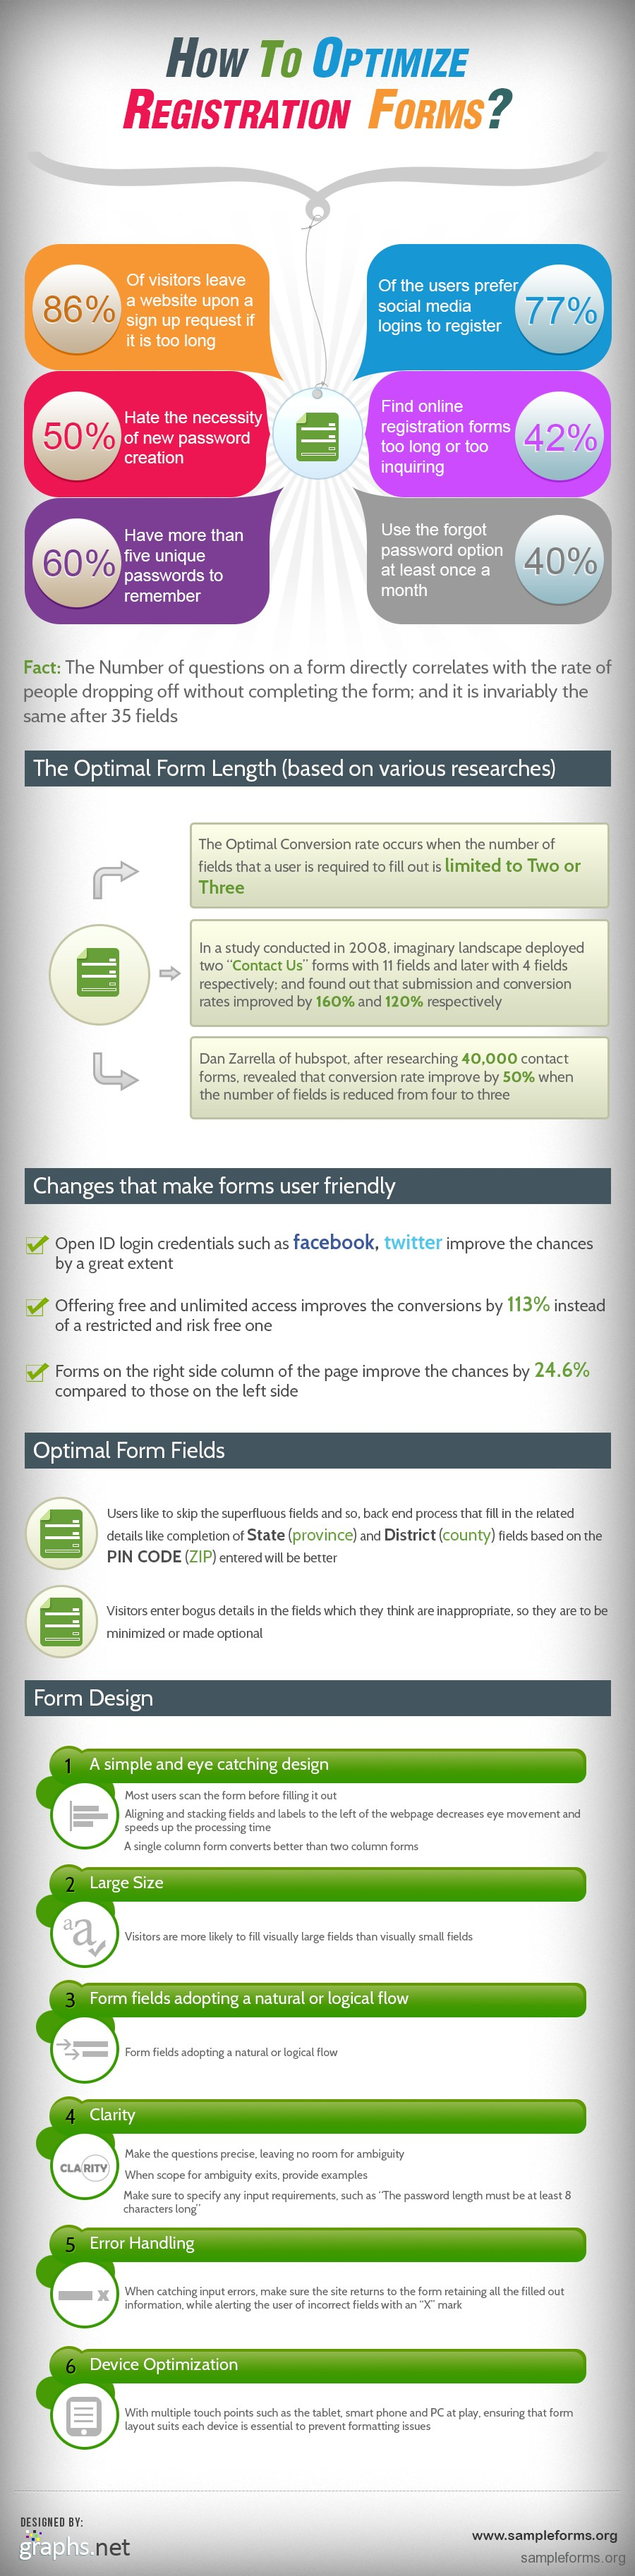 Registration Form Tips-Infographic